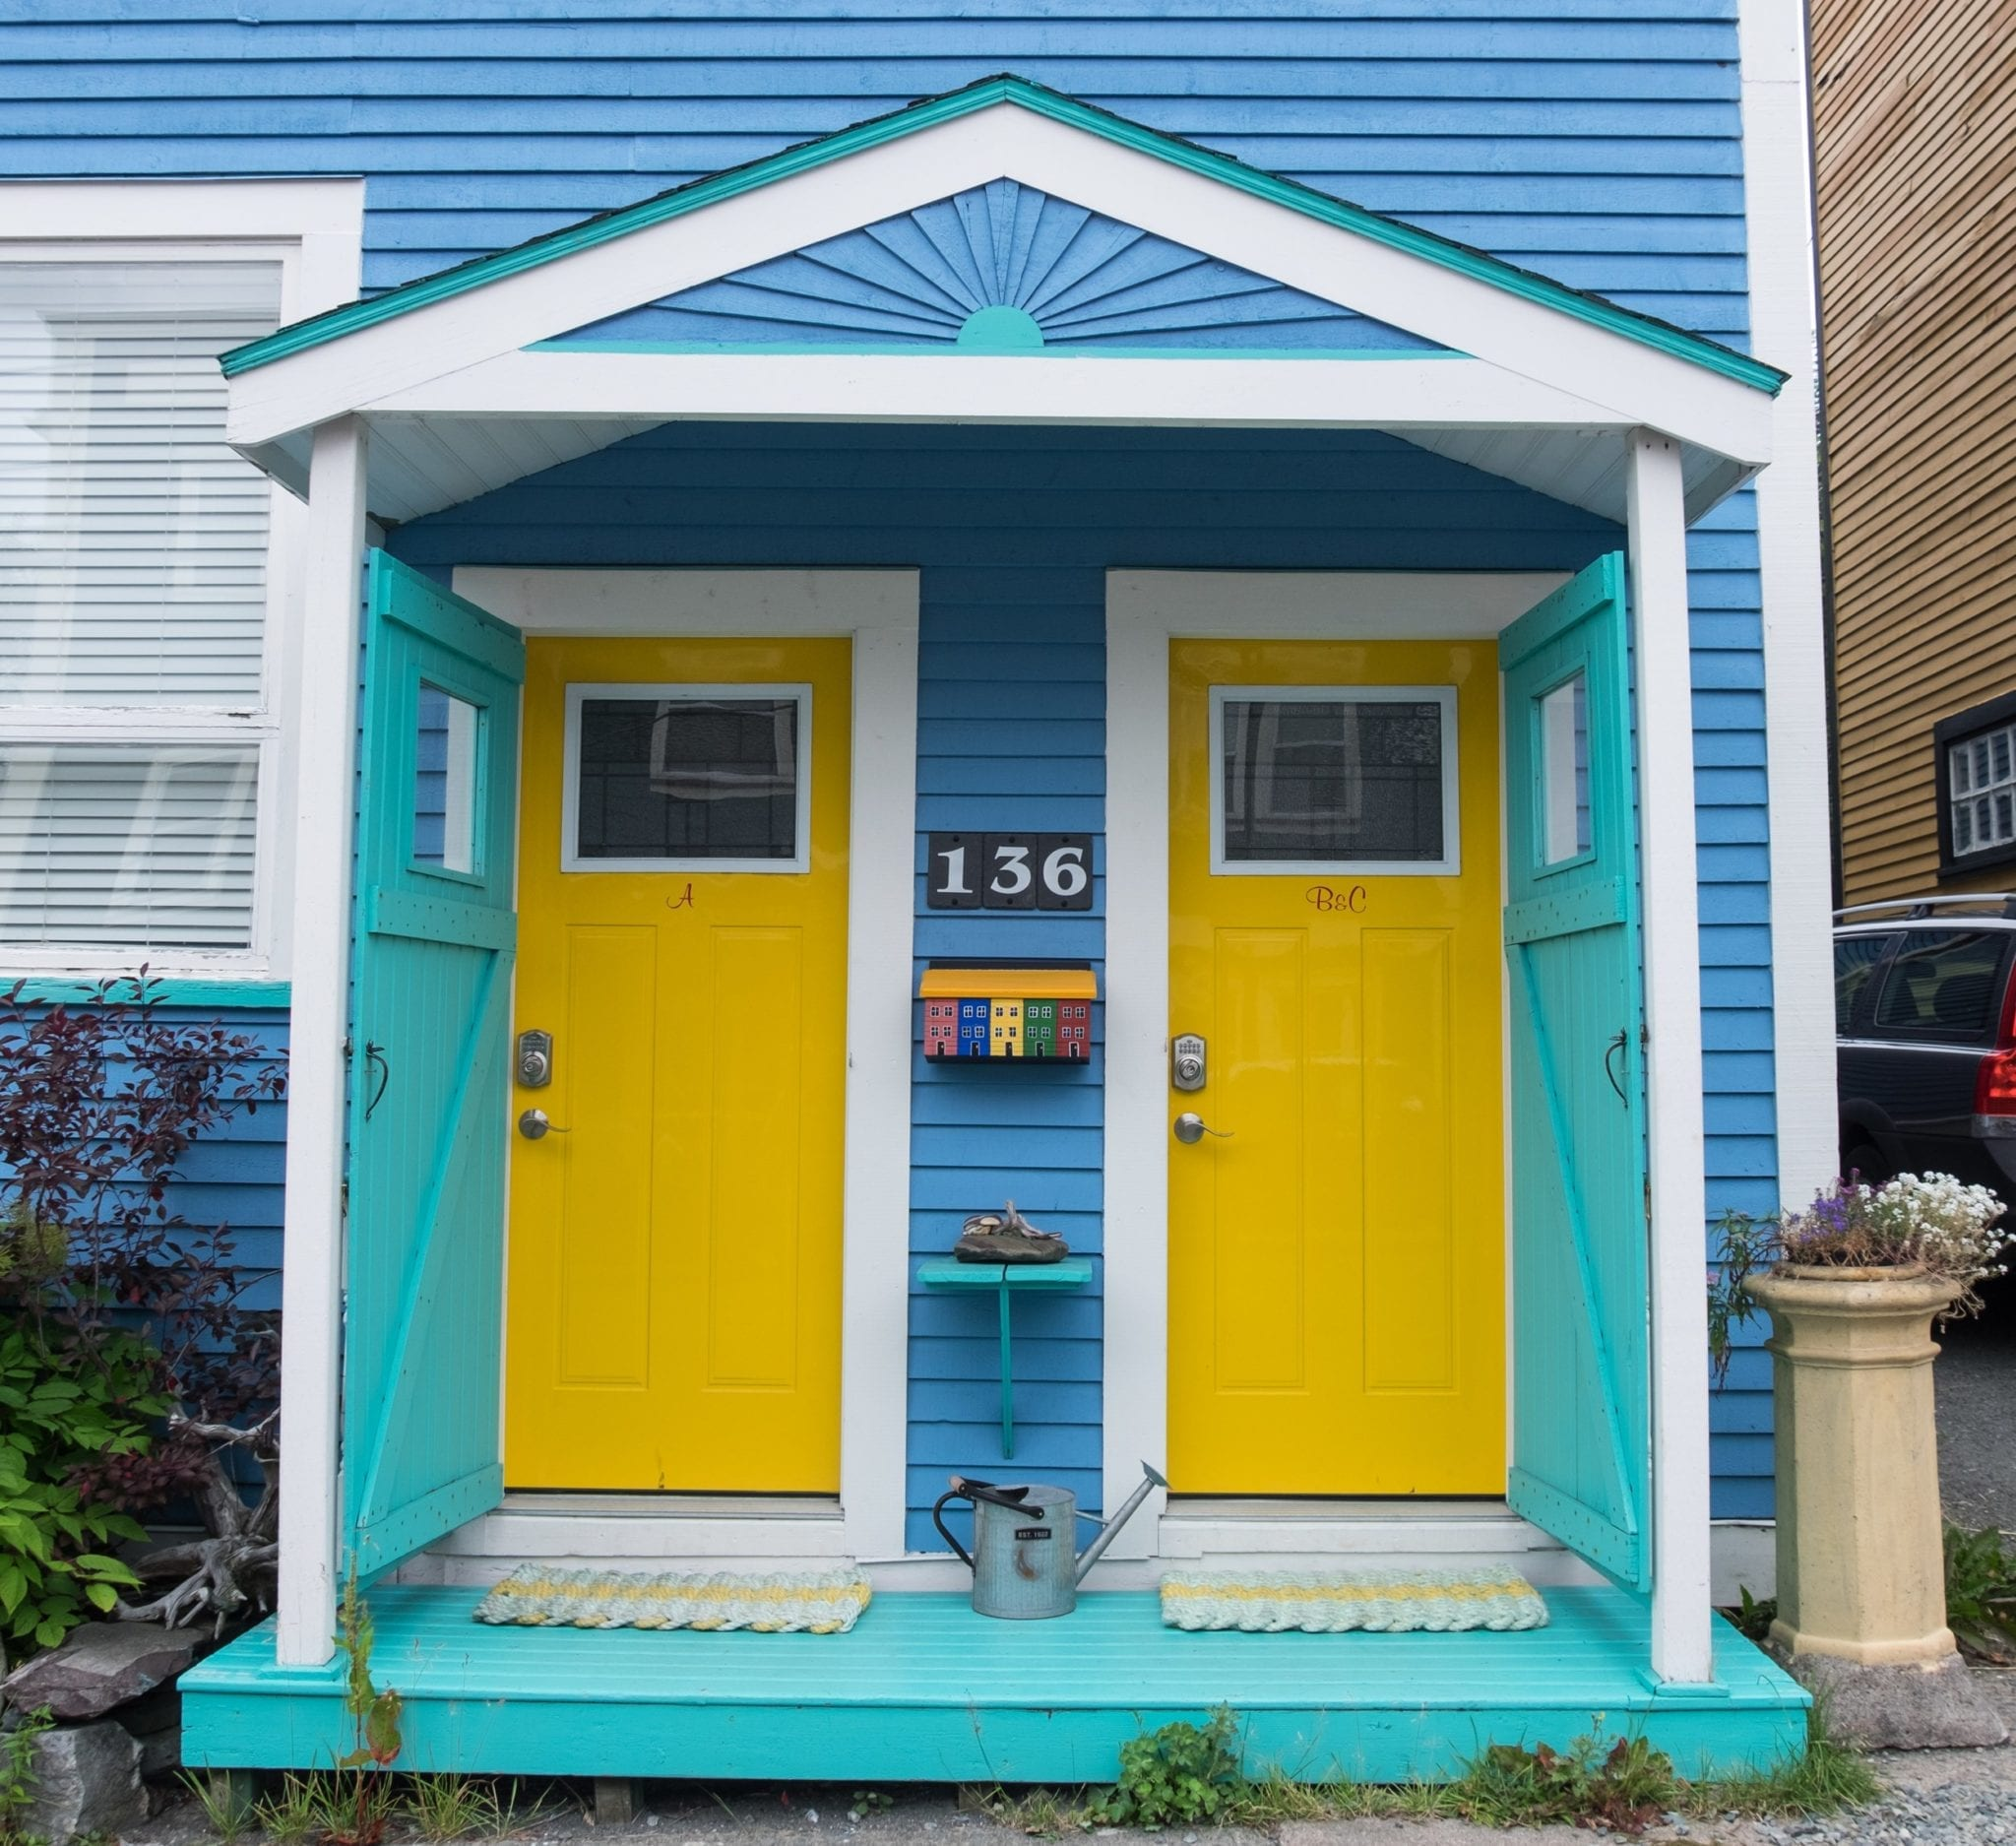 A blue house with two bright yellow doors side by side, surrounded by turquoise trim, in St. John's.